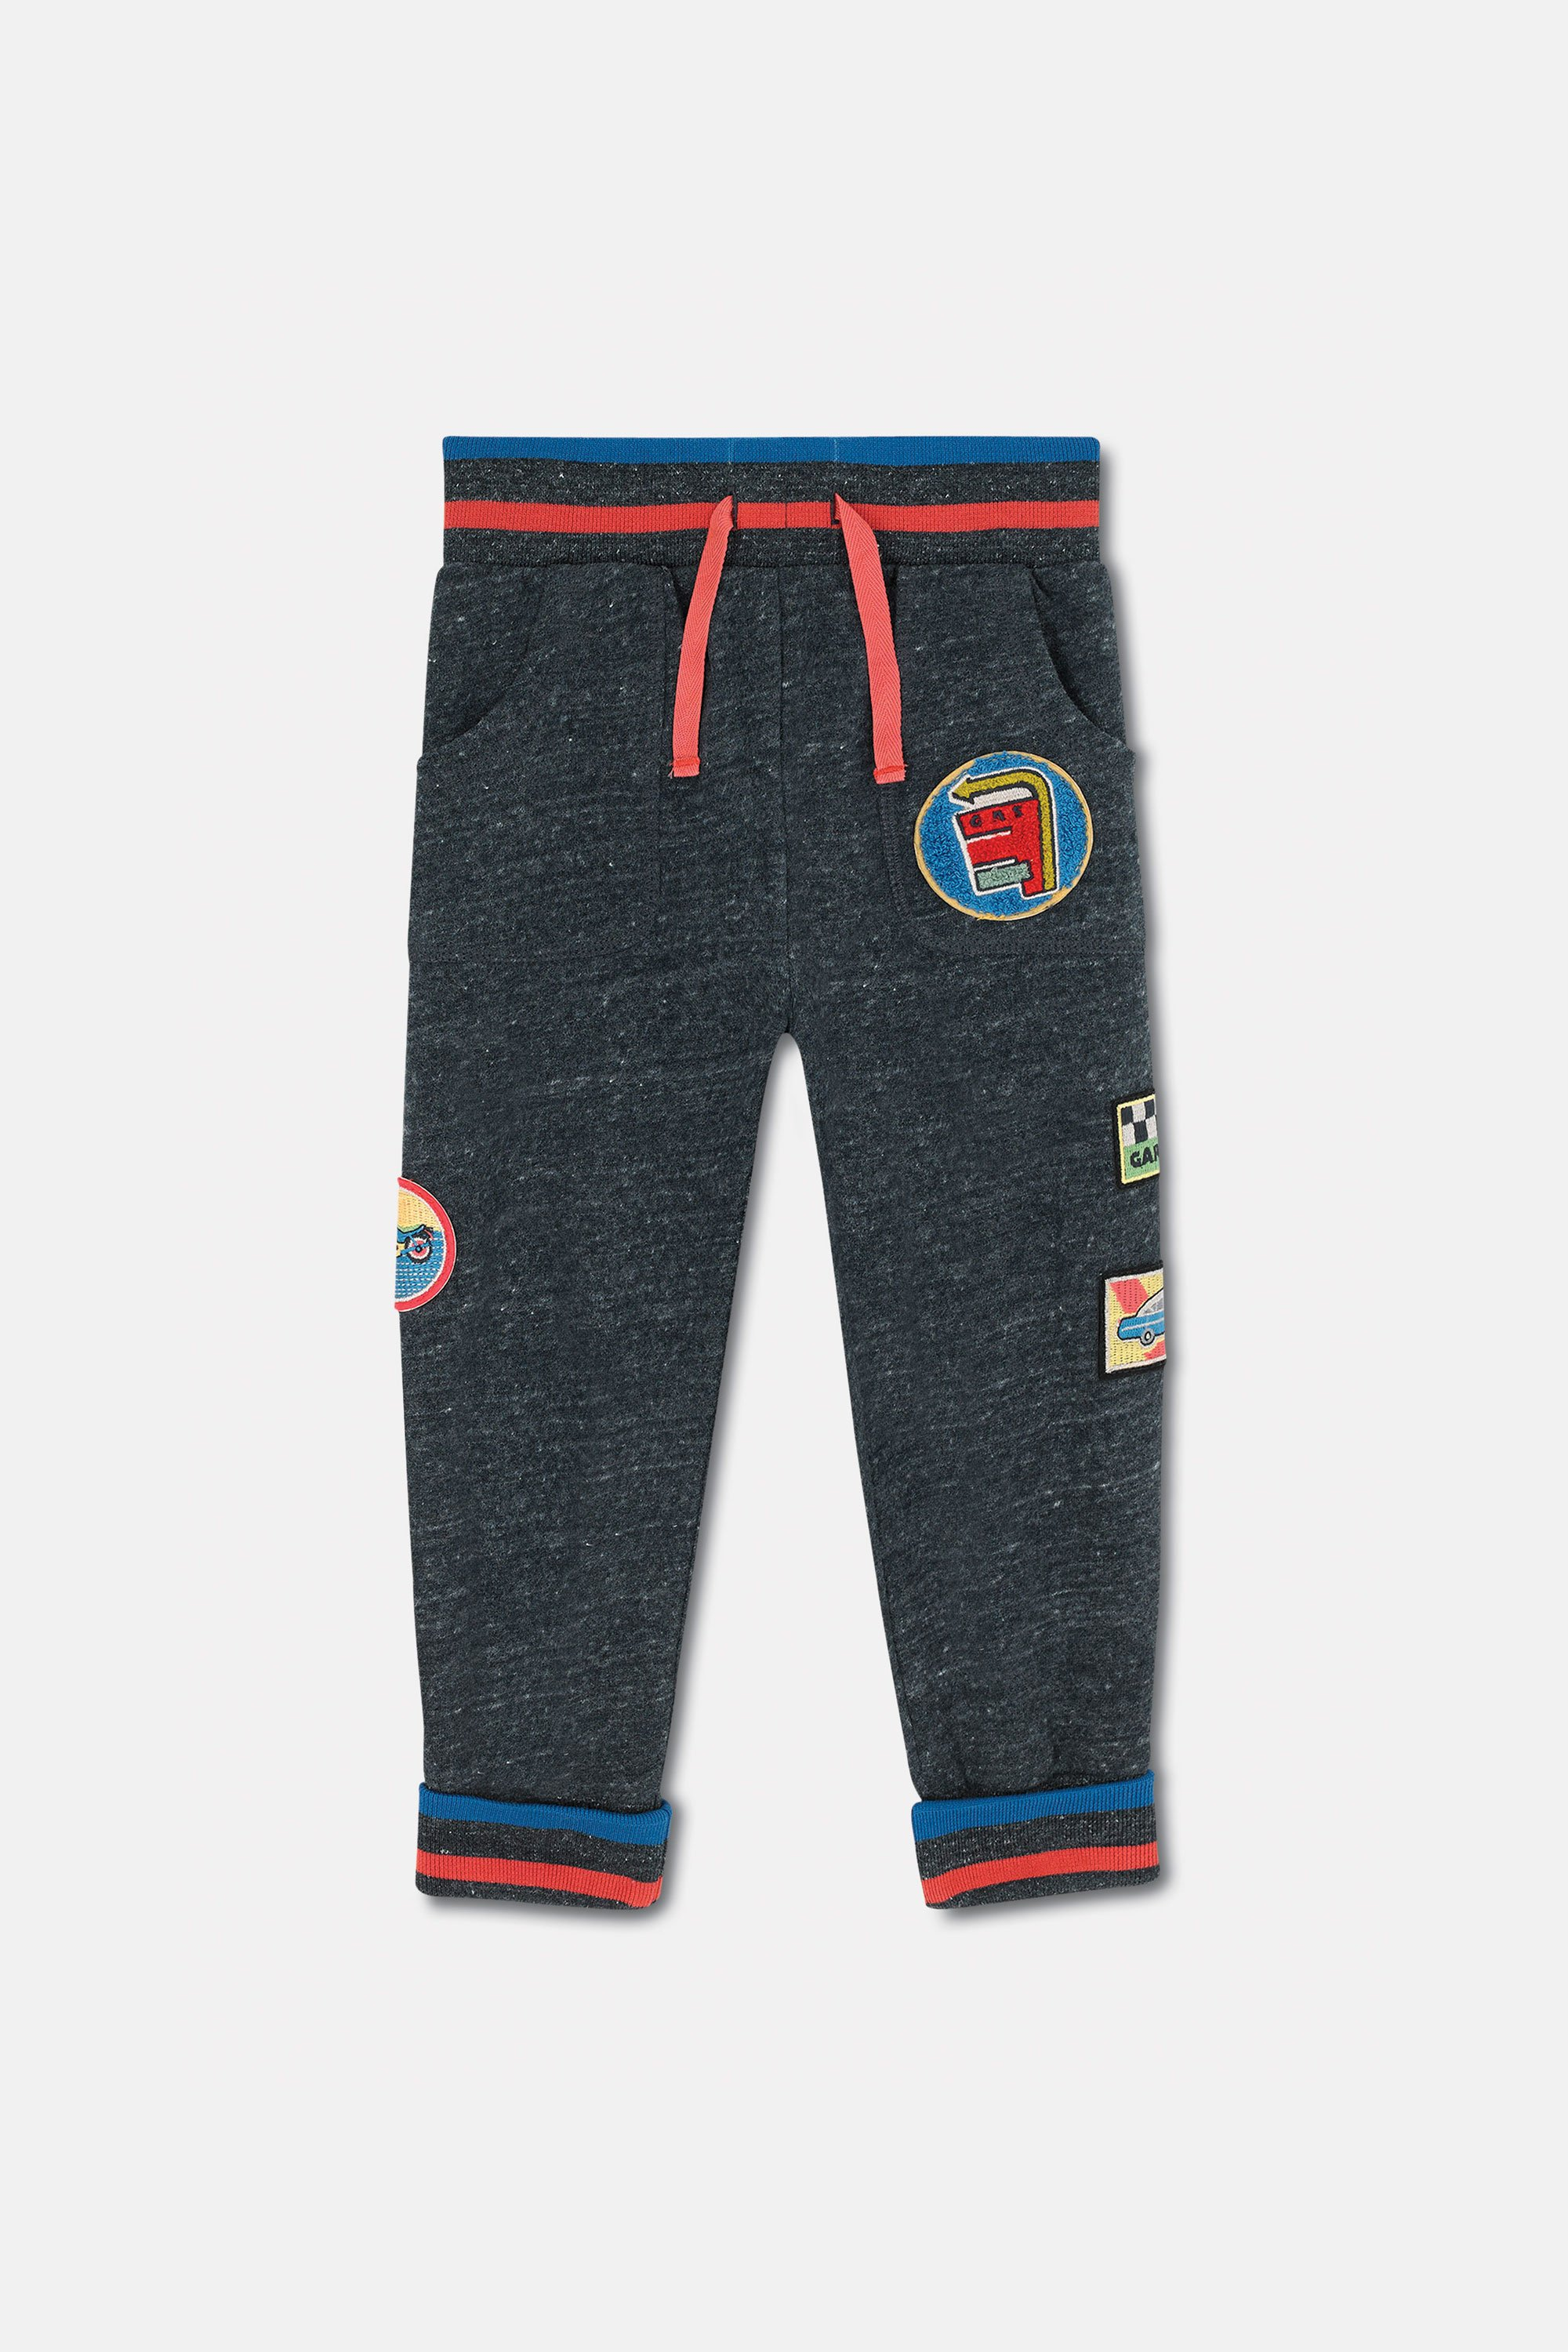 Cath Kidston Kids Jogger in Charcoal, Garage Station, 100% Cotton, 1-2 yr